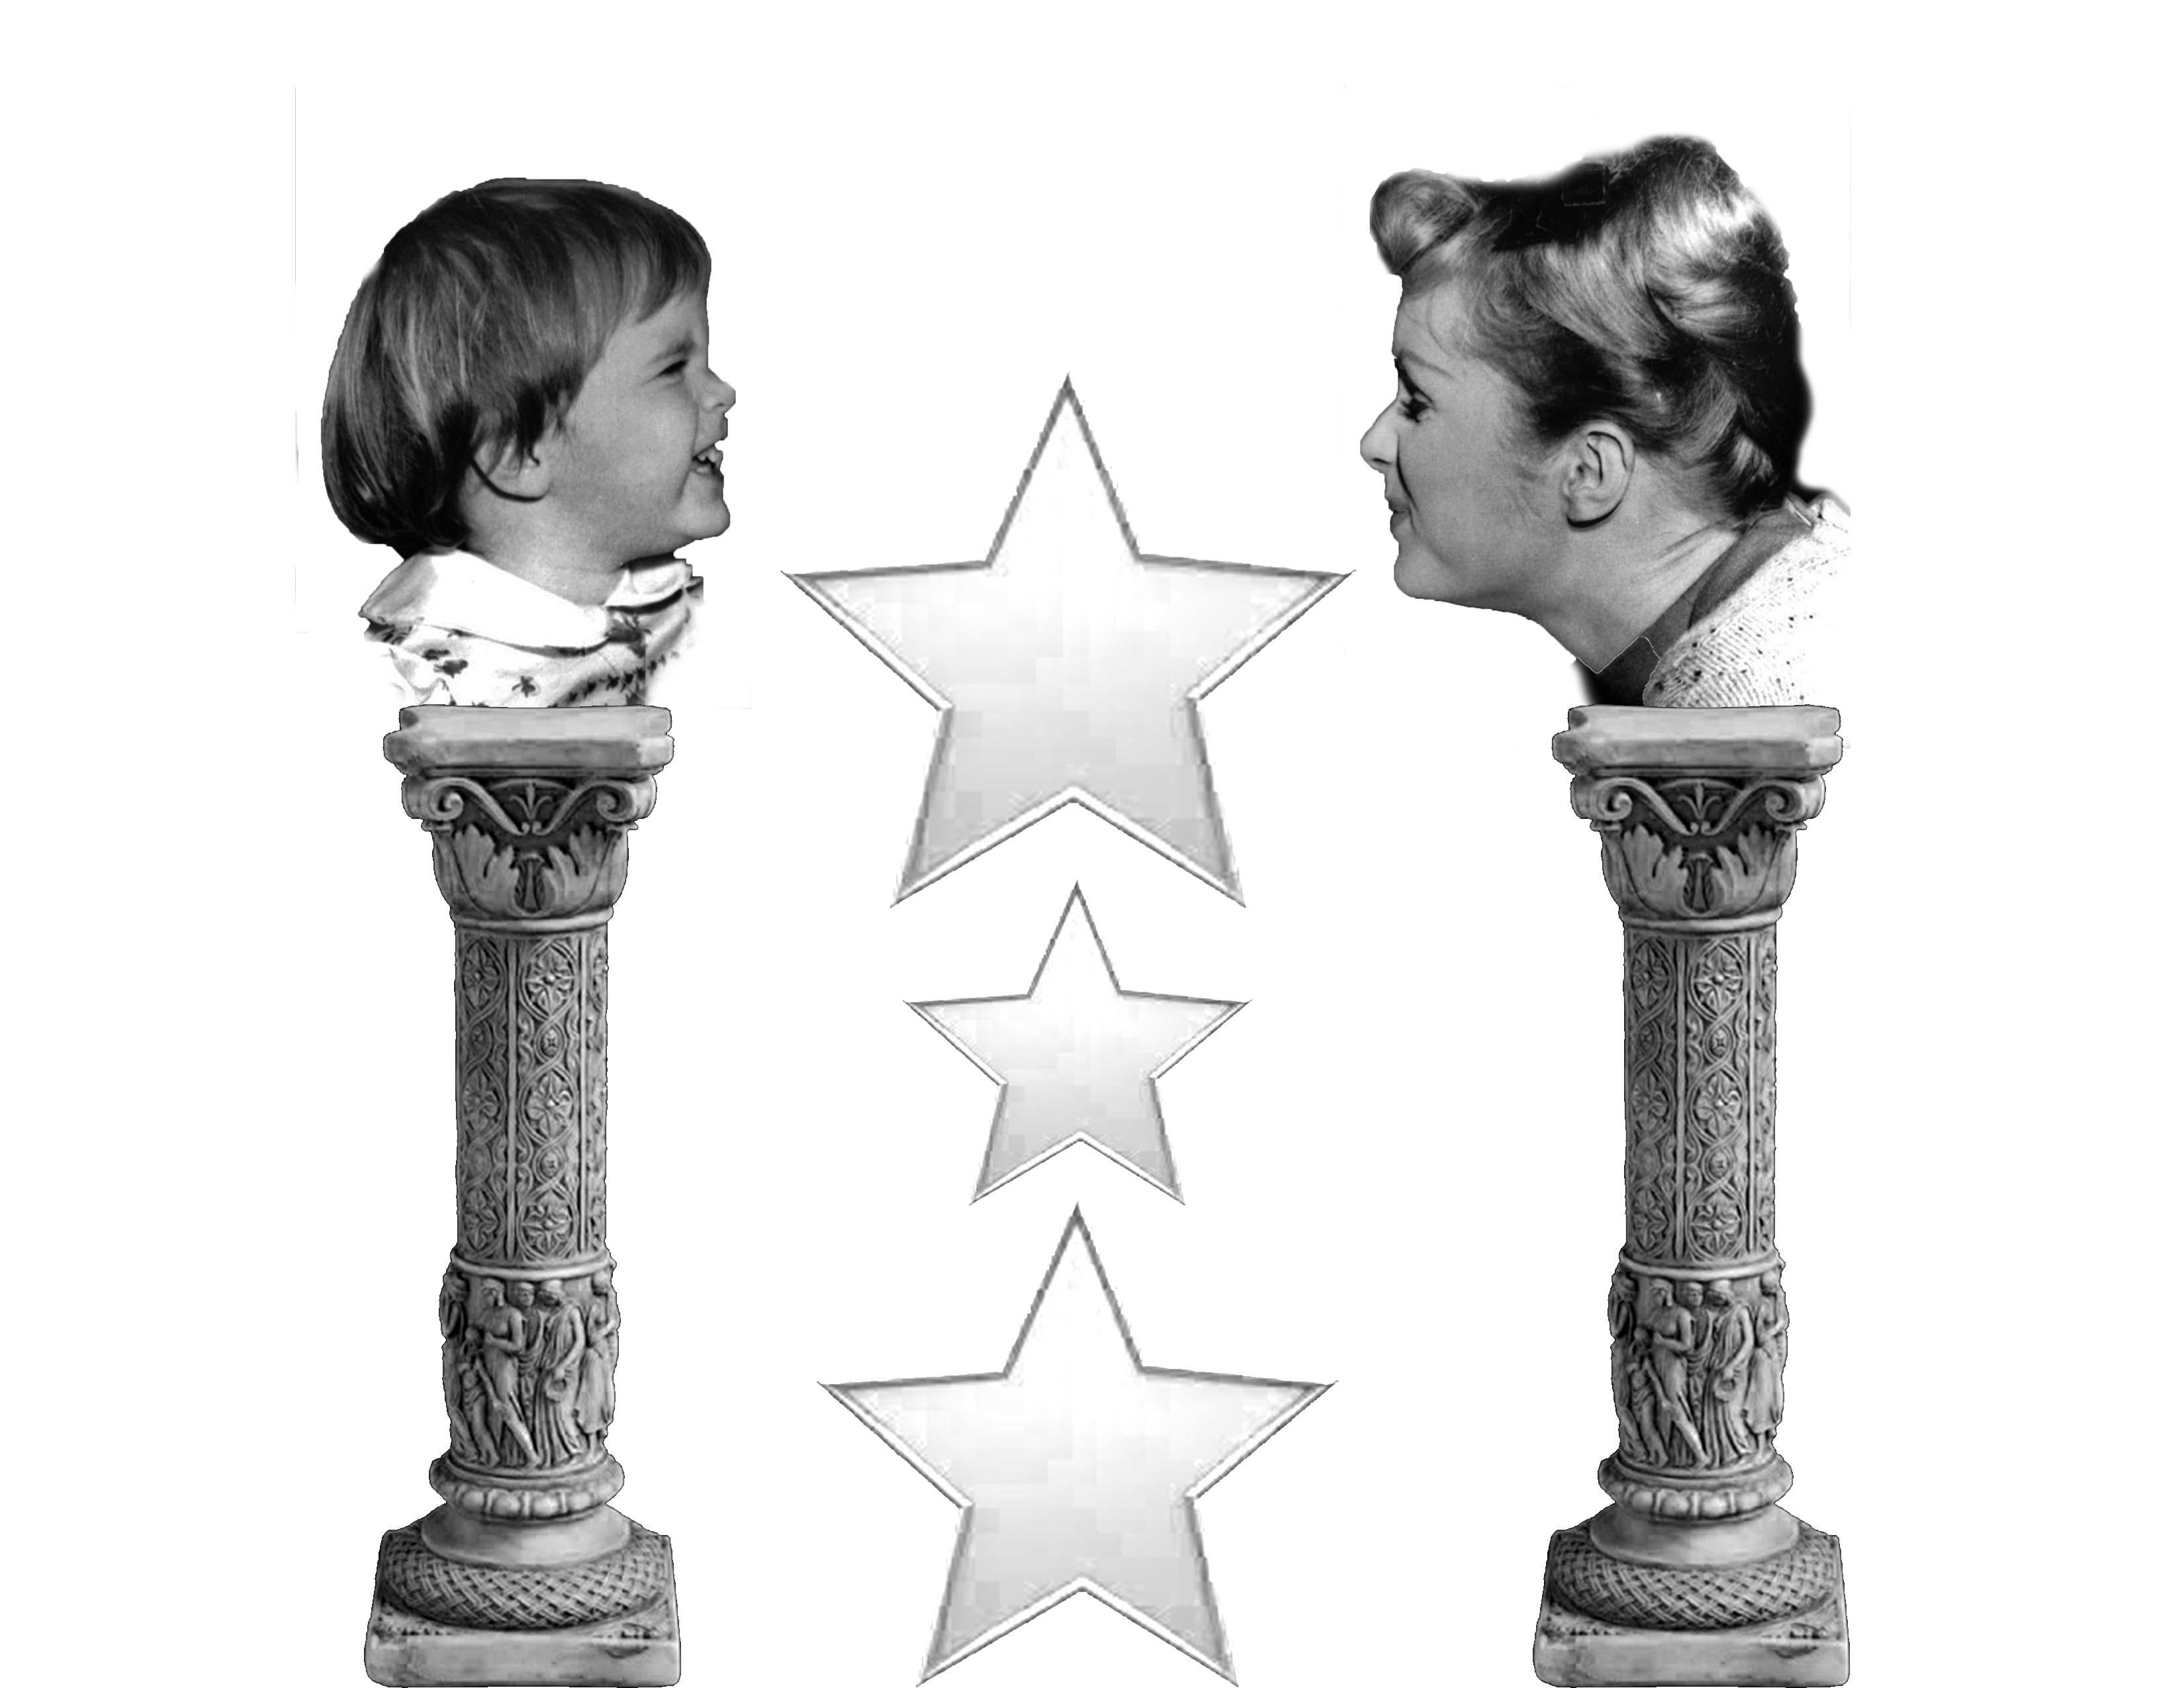 Debbie Reynolds and her daughter Carrie Fisher were held on pedestals by many. However, this is not an accurate way to think of a famous person.